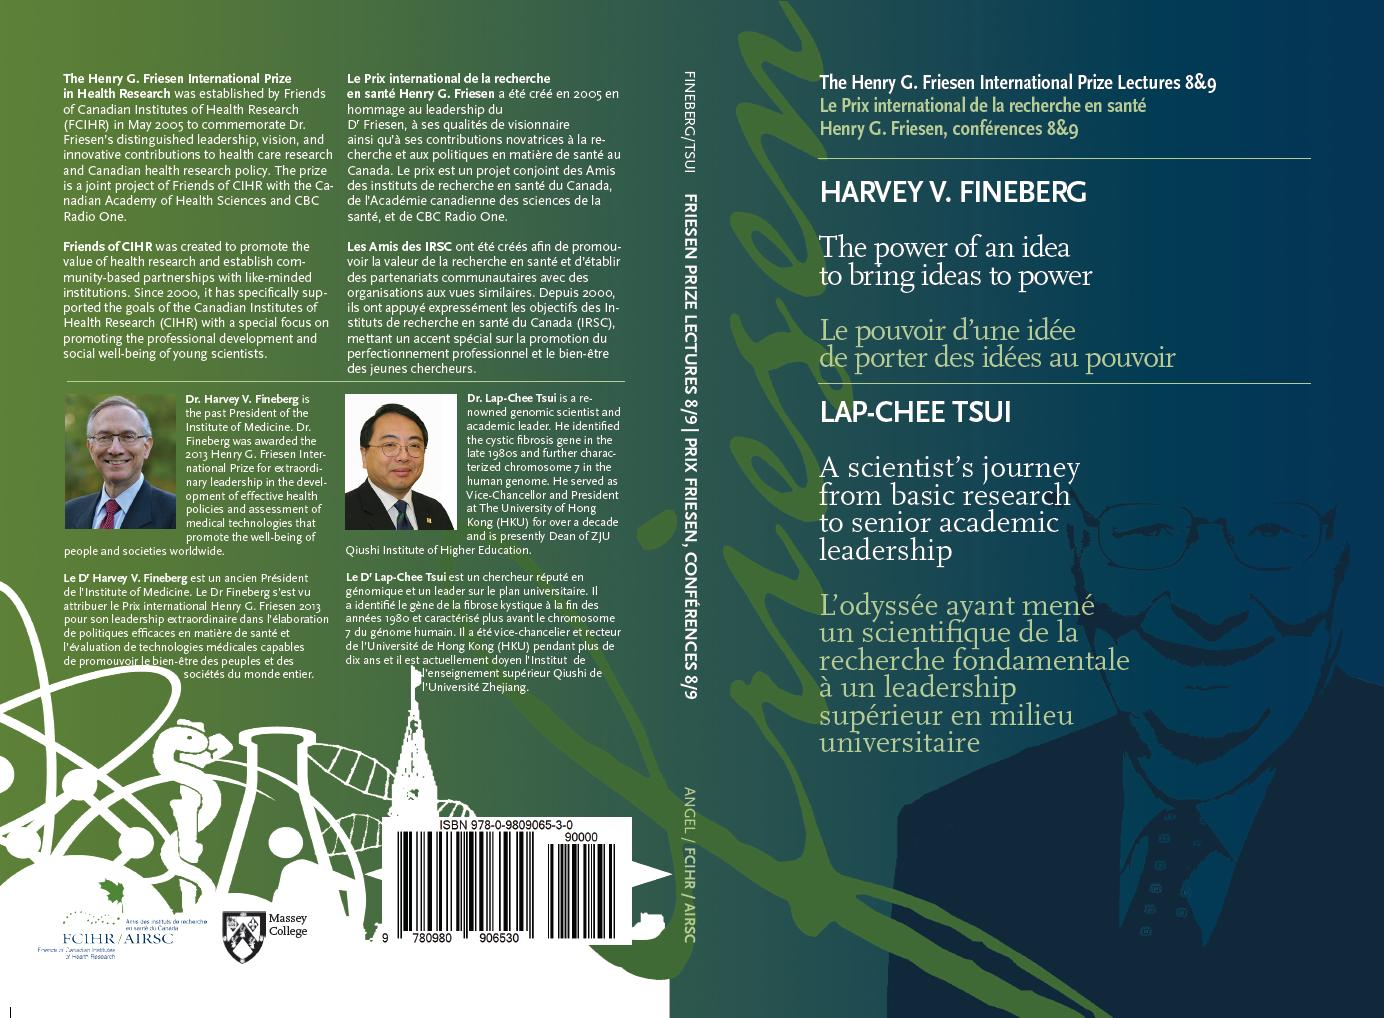 Front & Back Cover - Book #4 - Friesen Prize Lectures 8 & 9 - Fineberg & Tsui